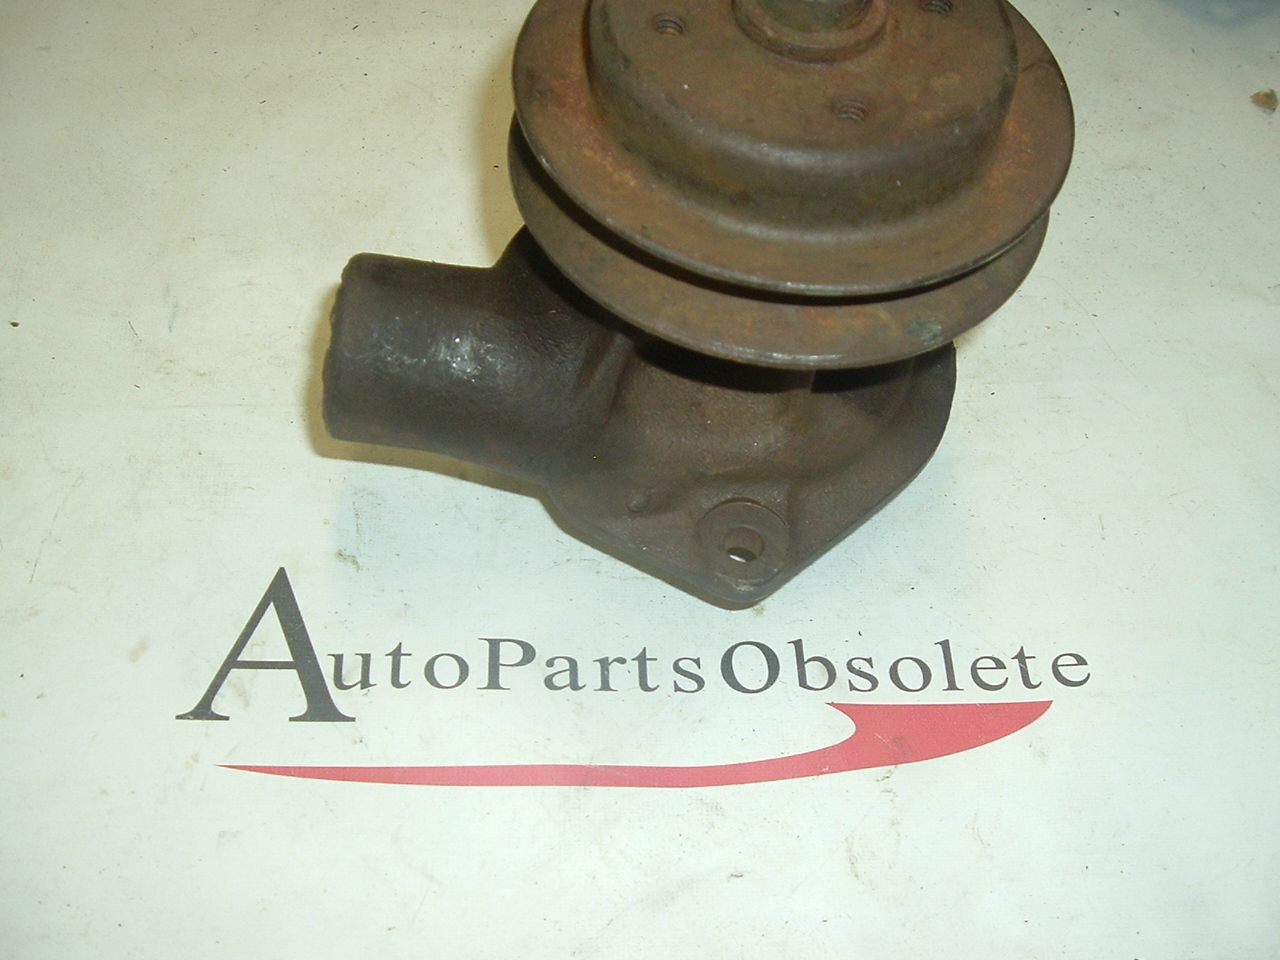 1935 chevrolet water pump (a pc10rb)